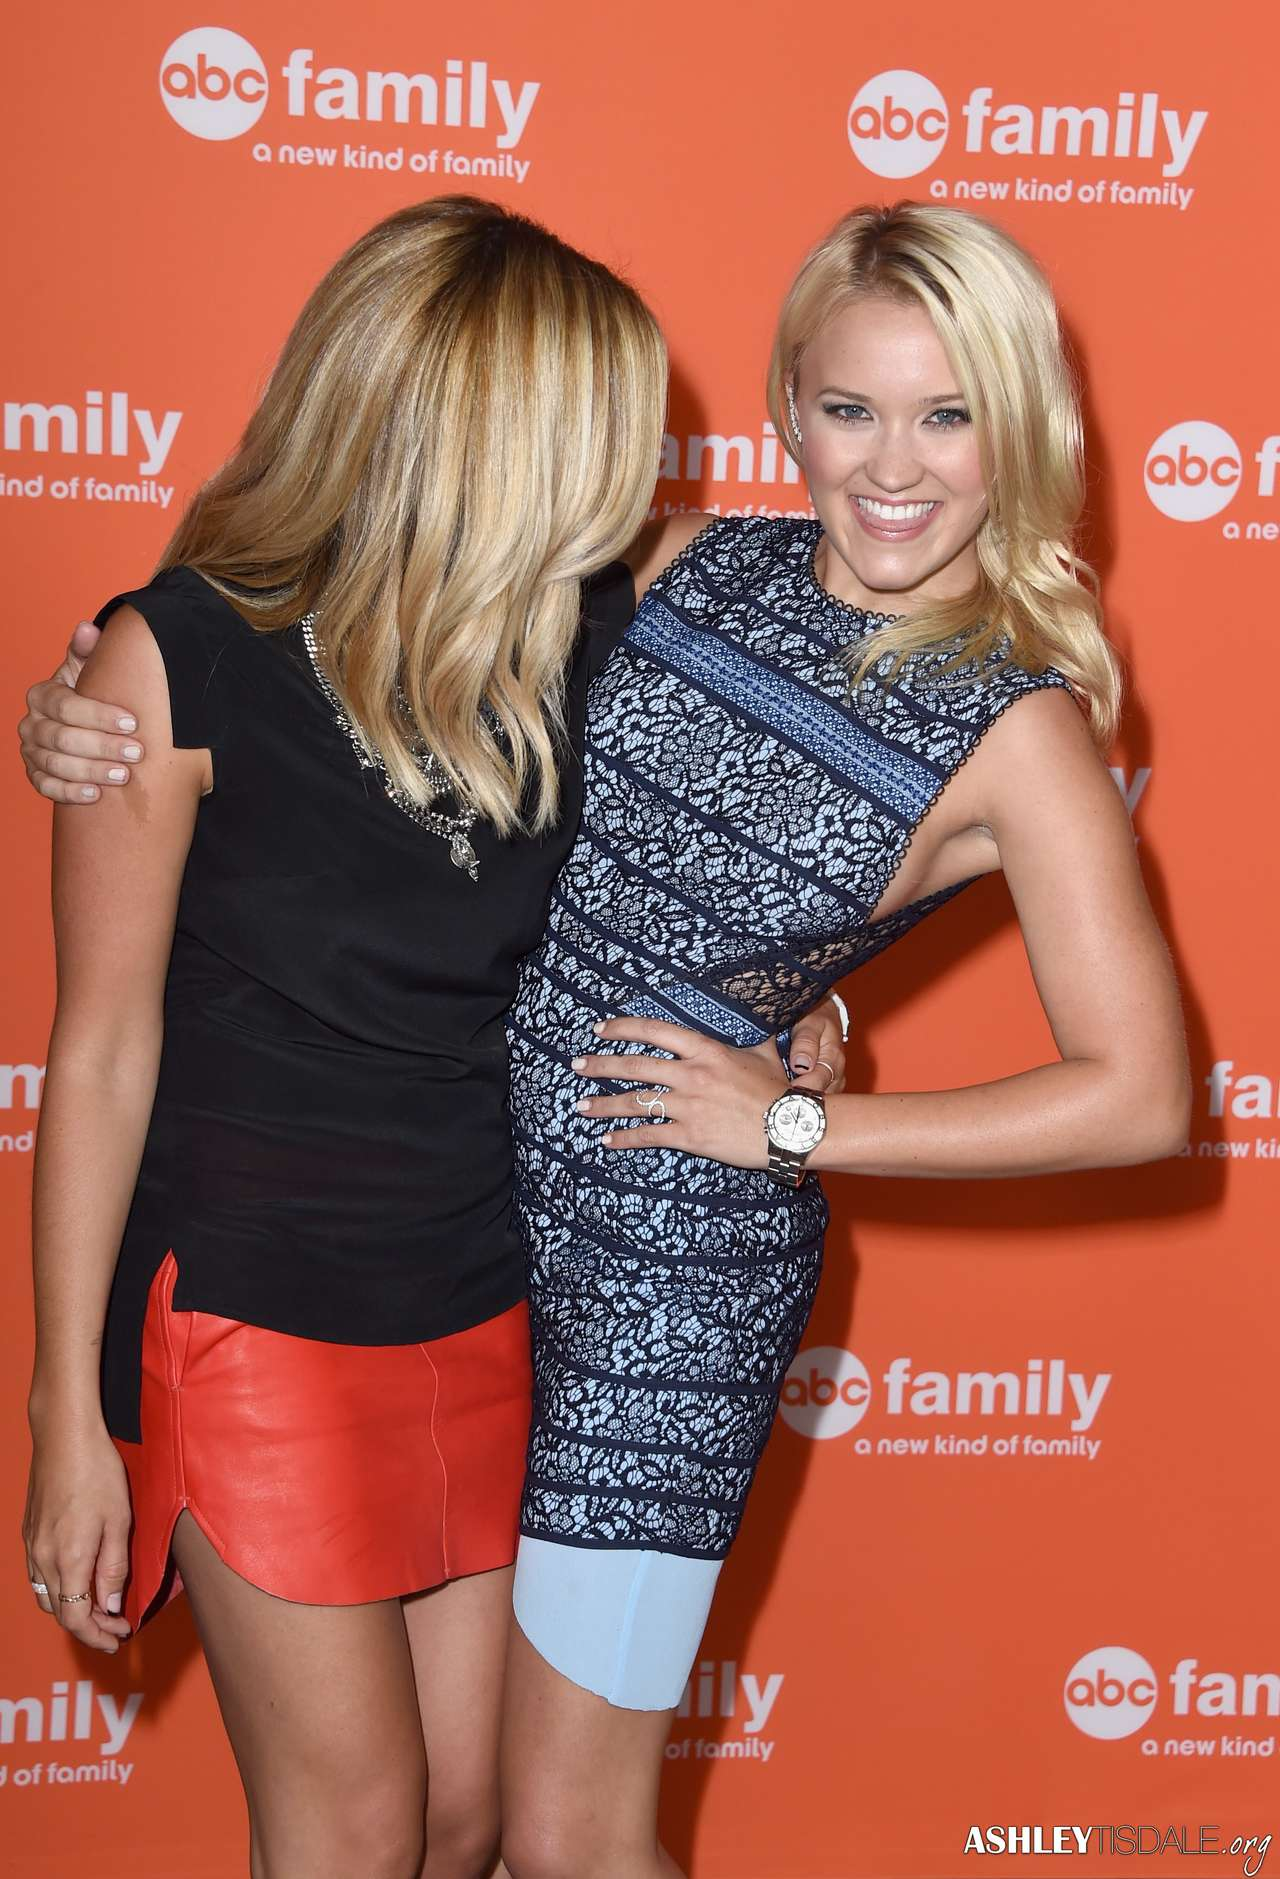 Ashley Tisdale 2014 : Ashley Tisdale at 2014 Disney ABC TCA Summer Press Tour in Beverly Hills -18